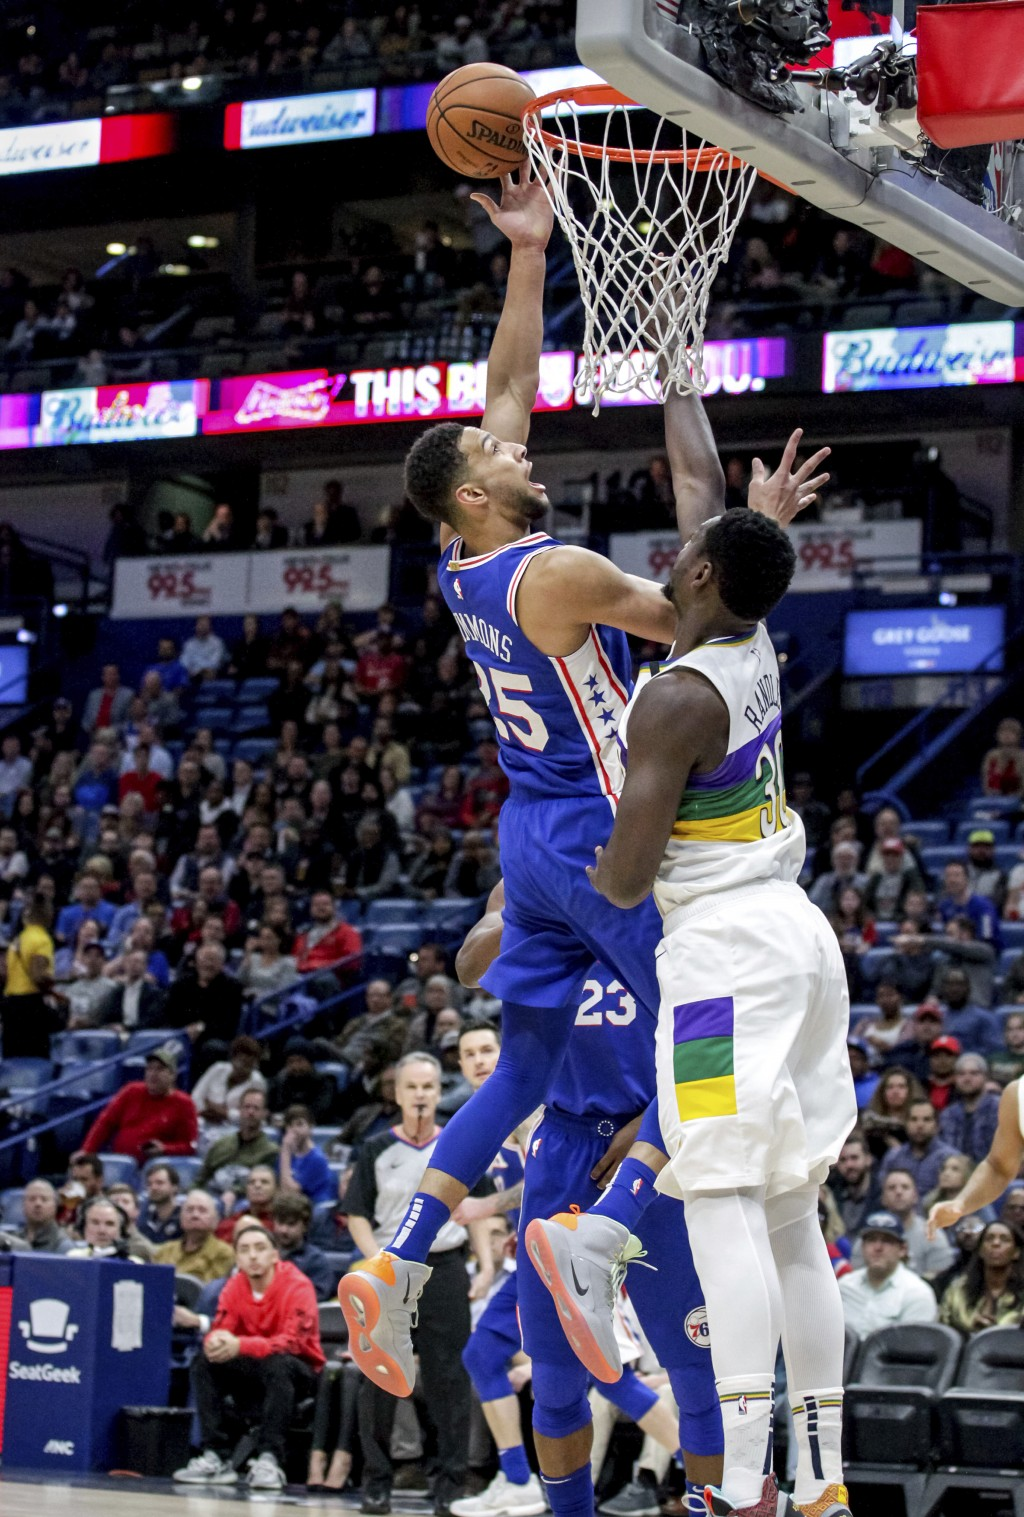 Philadelphia 76ers guard Ben Simmons (25) shoots over New Orleans Pelicans center Julius Randle (30) in the first half of an NBA basketball game in Ne